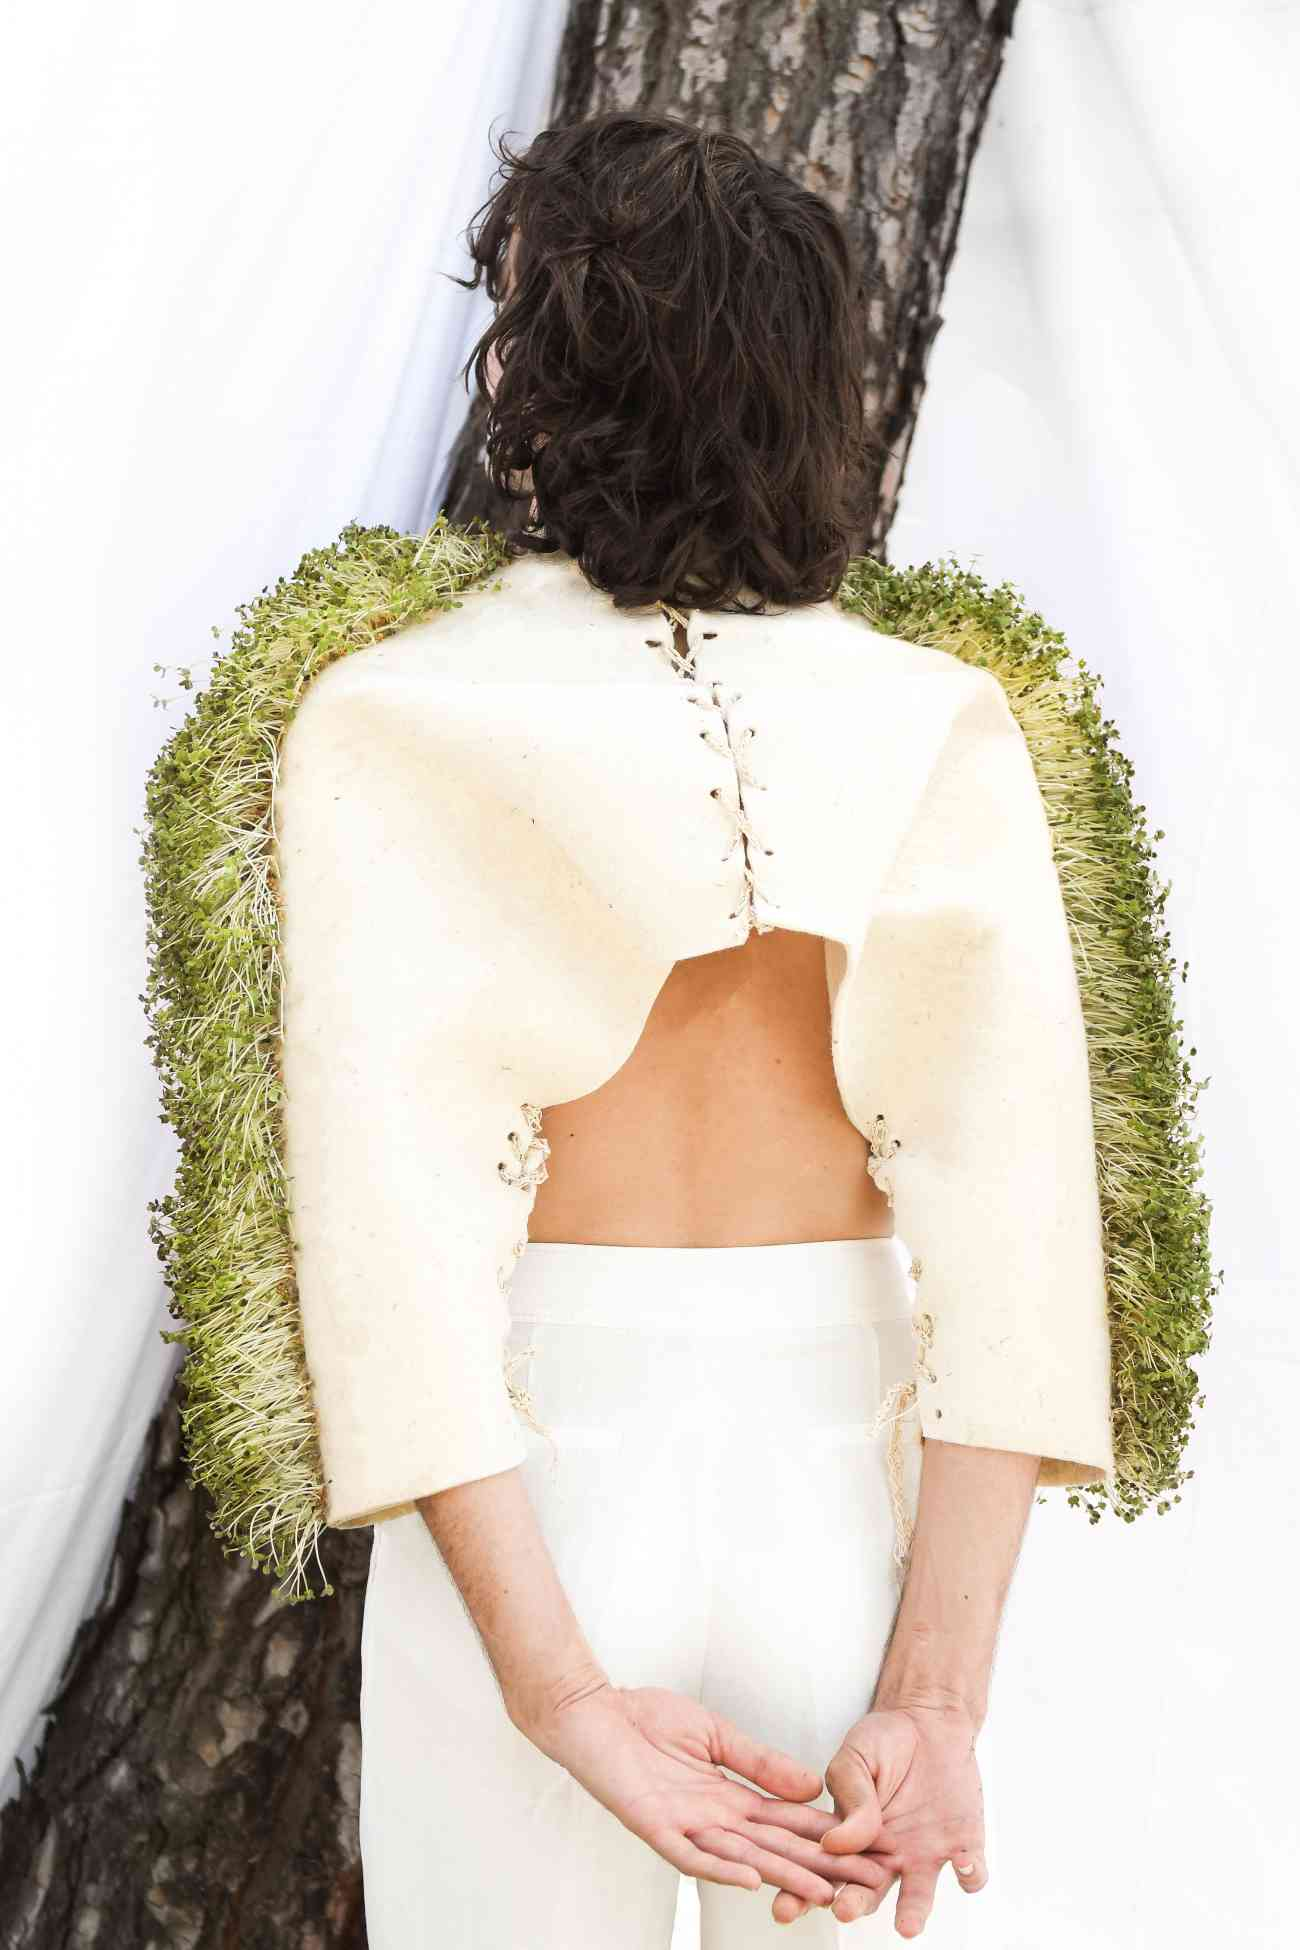 biotechnology, fabrics, fashion design, Fashion studies, ied, IED Madrid, interview designer, microbiology, nature, organic design, organic fibres, organic project, Paula Ulargui, Pieles siamesas. Dos naturalezas. Un cuerpo, plants, seeds, sustainable design, sustainable fashion